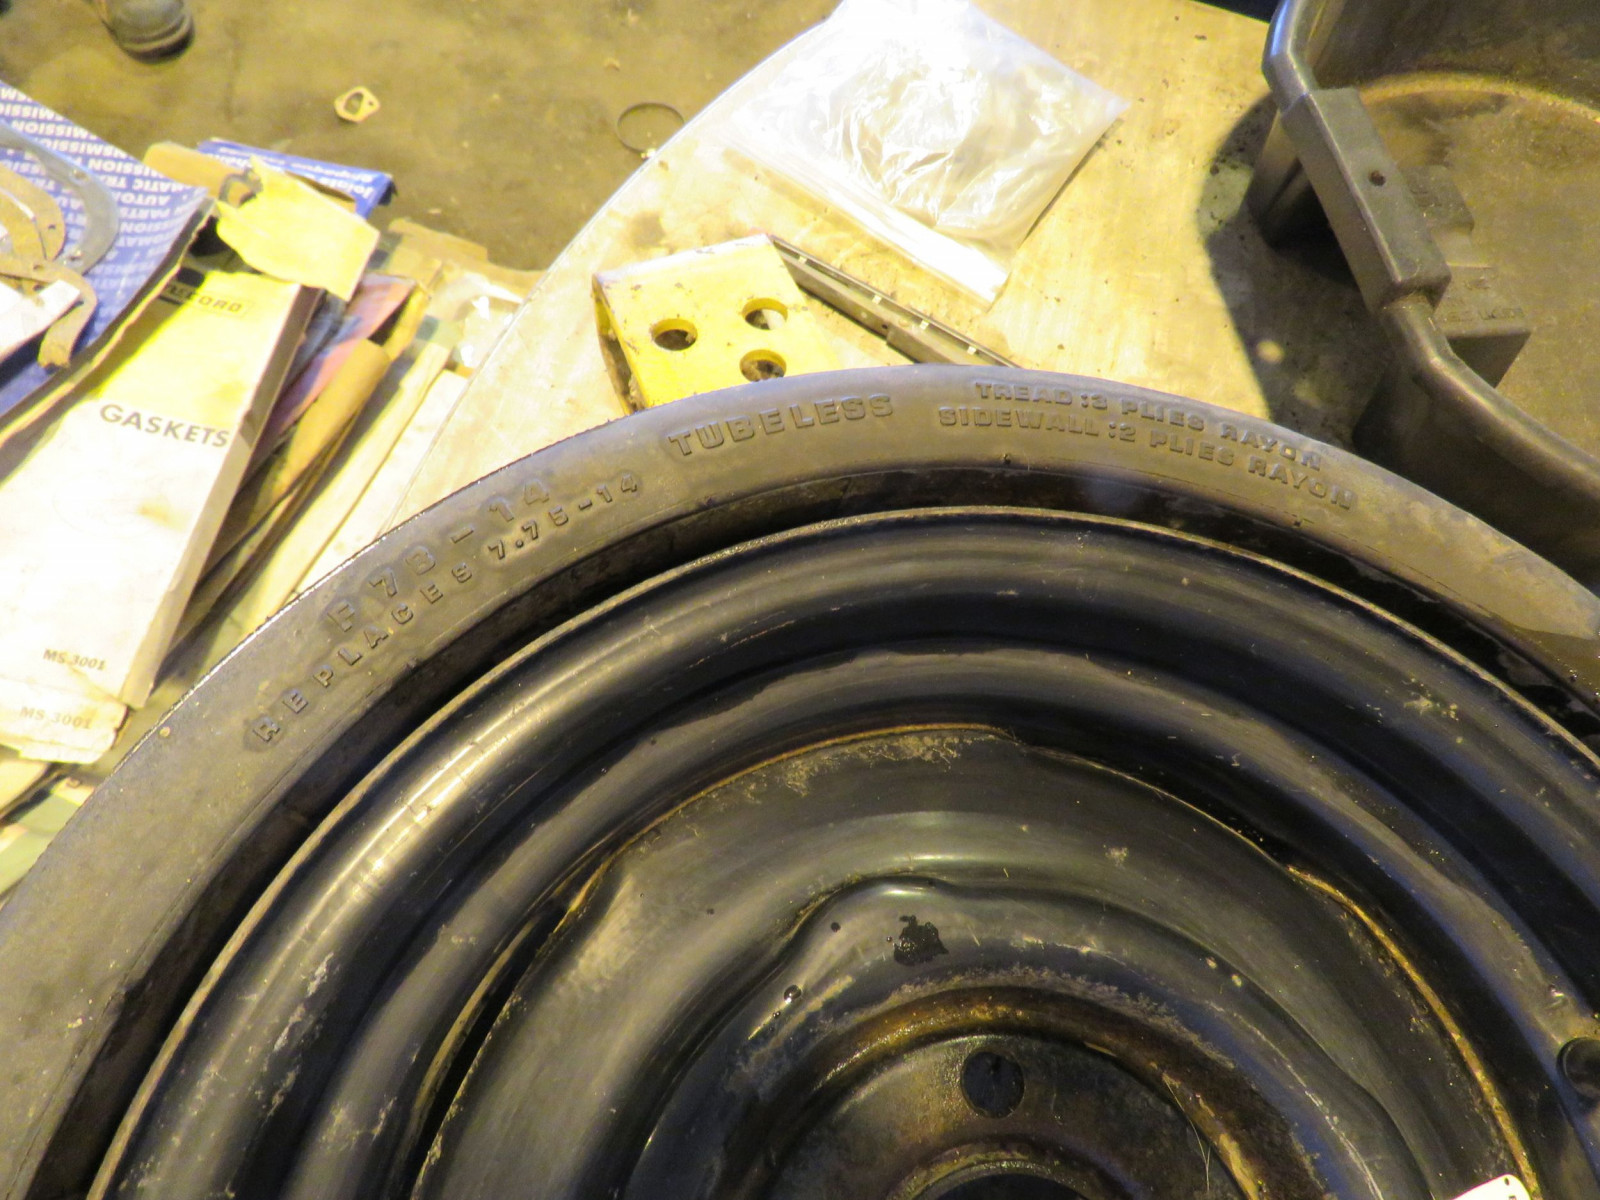 RARE BF Goodrich Collapsible Spare Tire for 426 HEMI CUDA, Challenger - Image 4